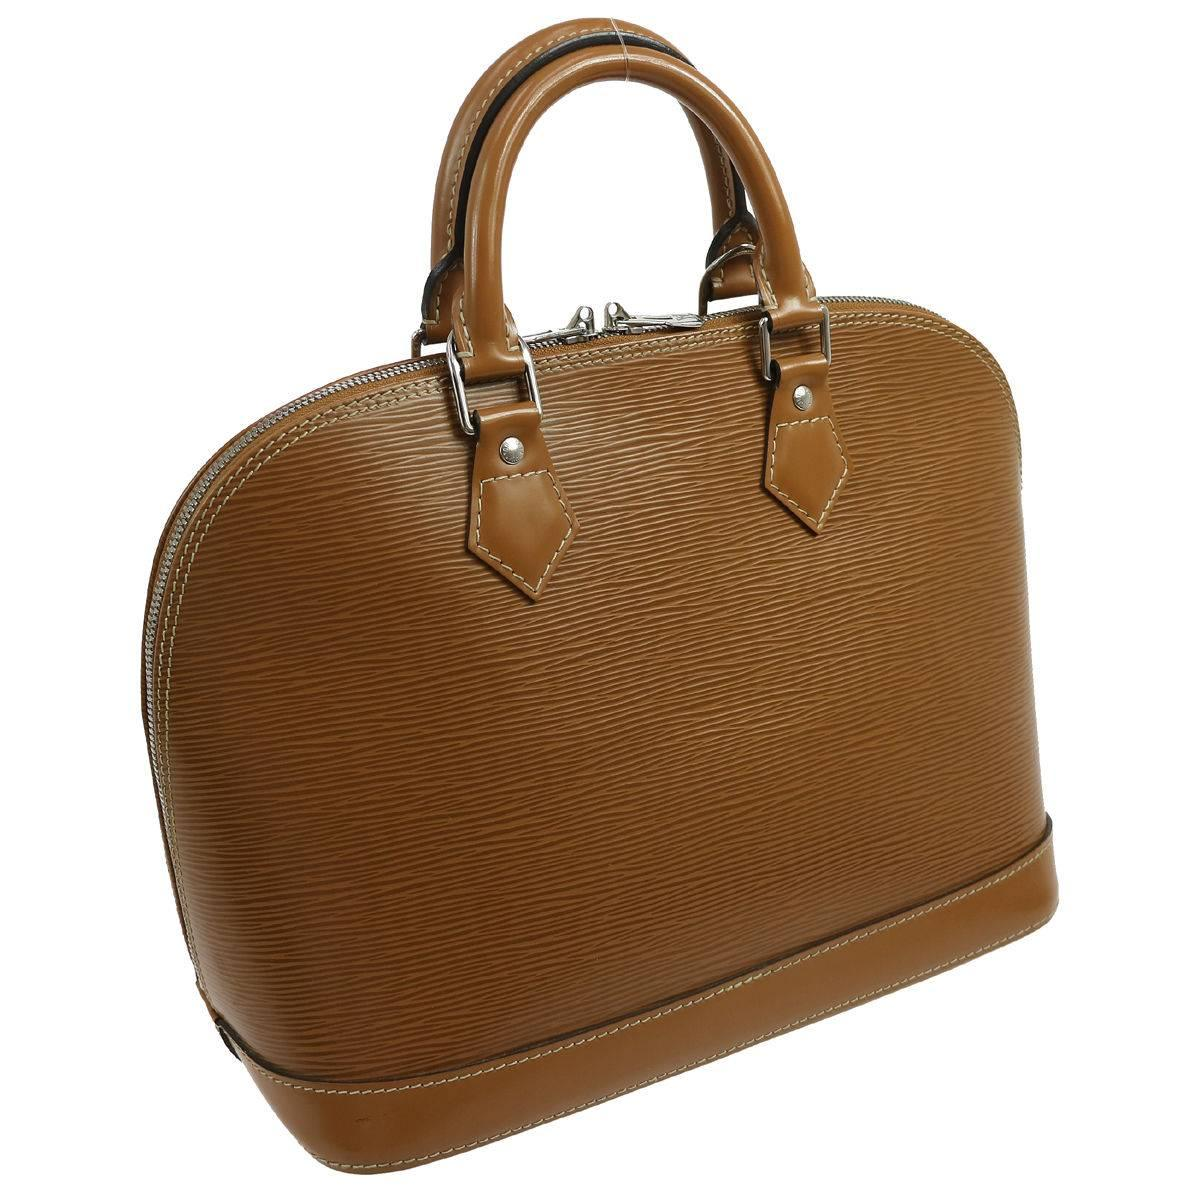 Louis Vuitton Cognac Leather Evening Top Handle Satchel Bag Oz4WG